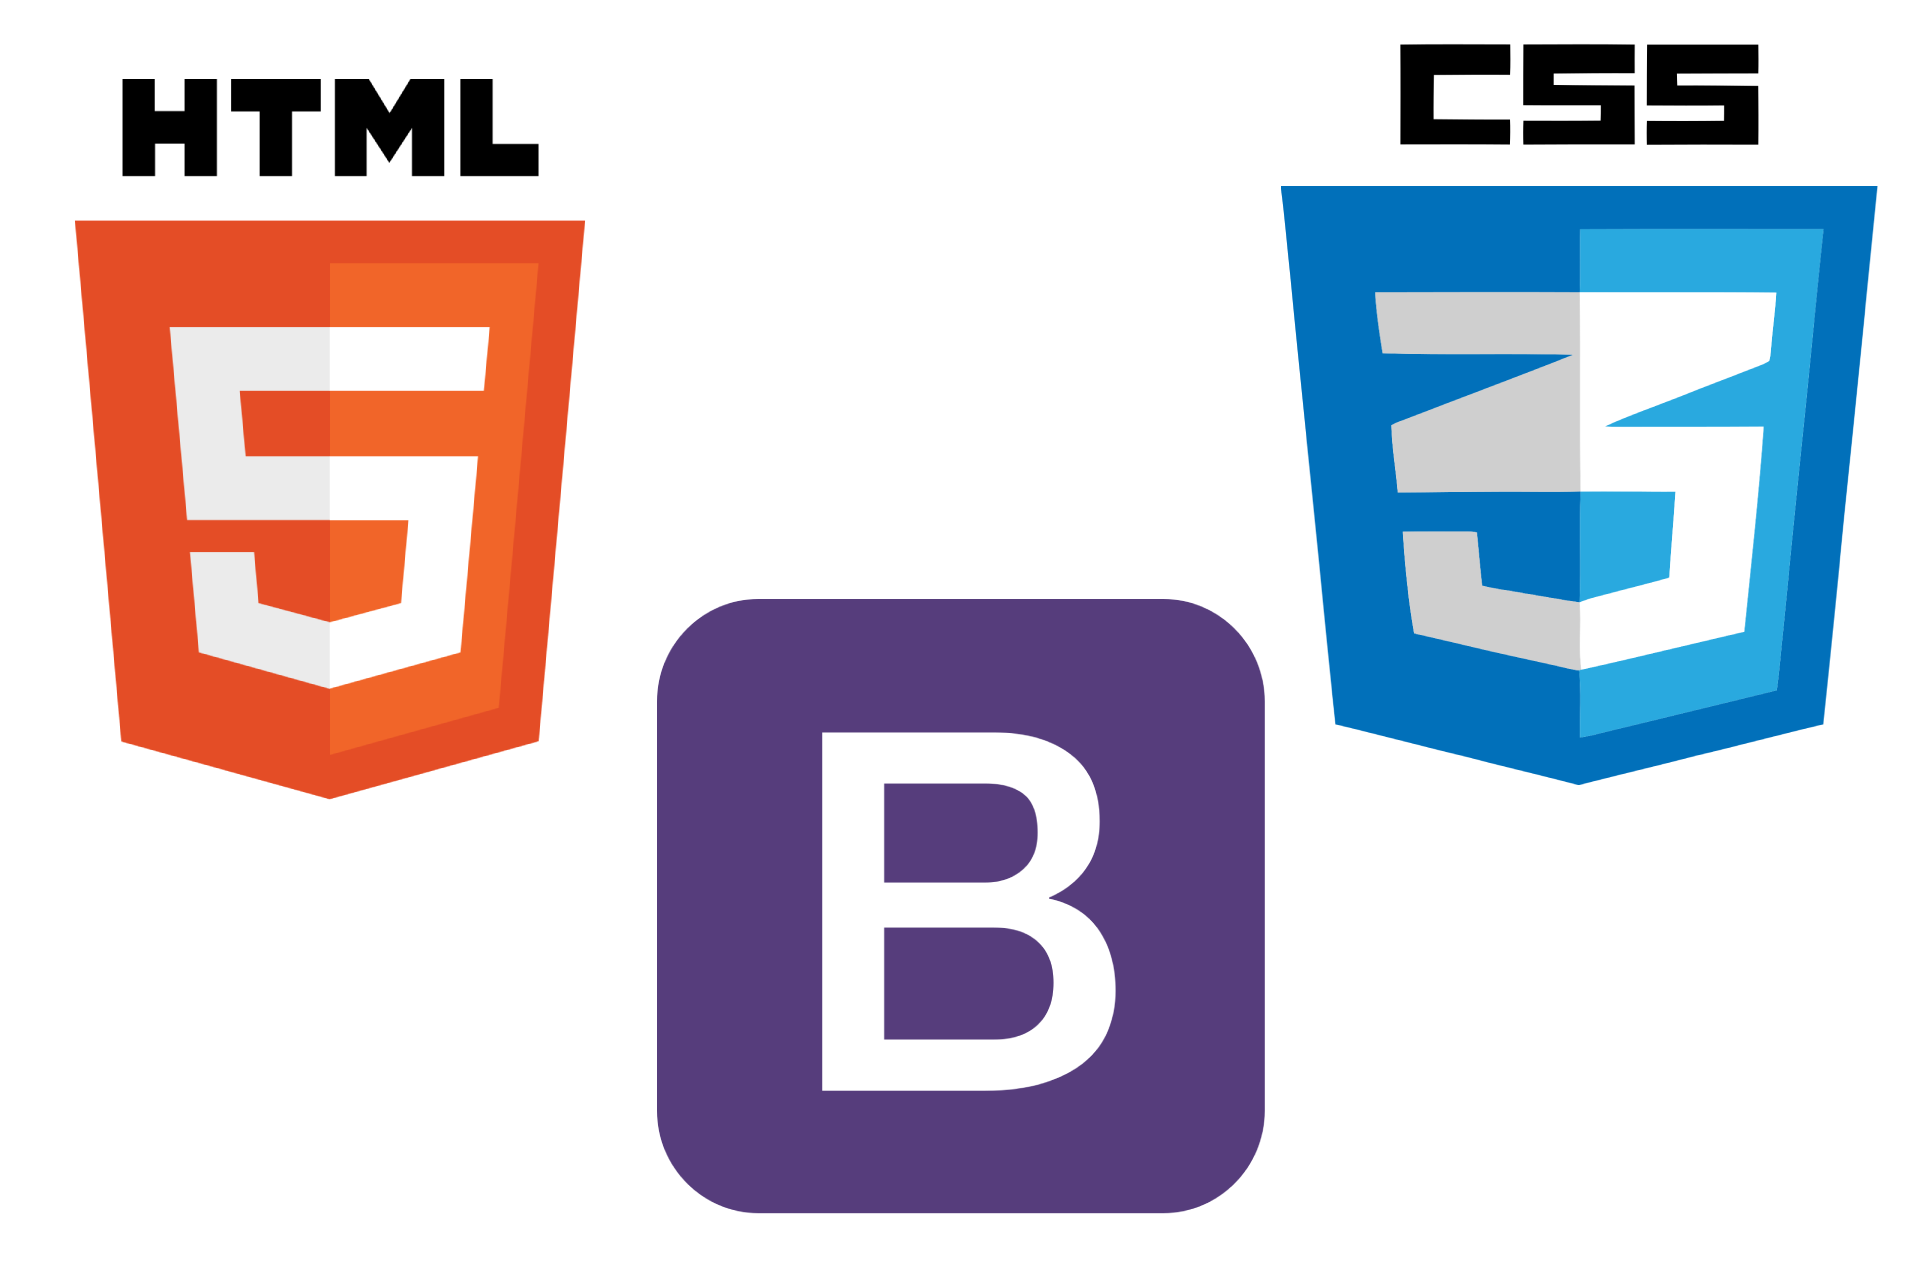 HTML CSS BOOTSTRAP